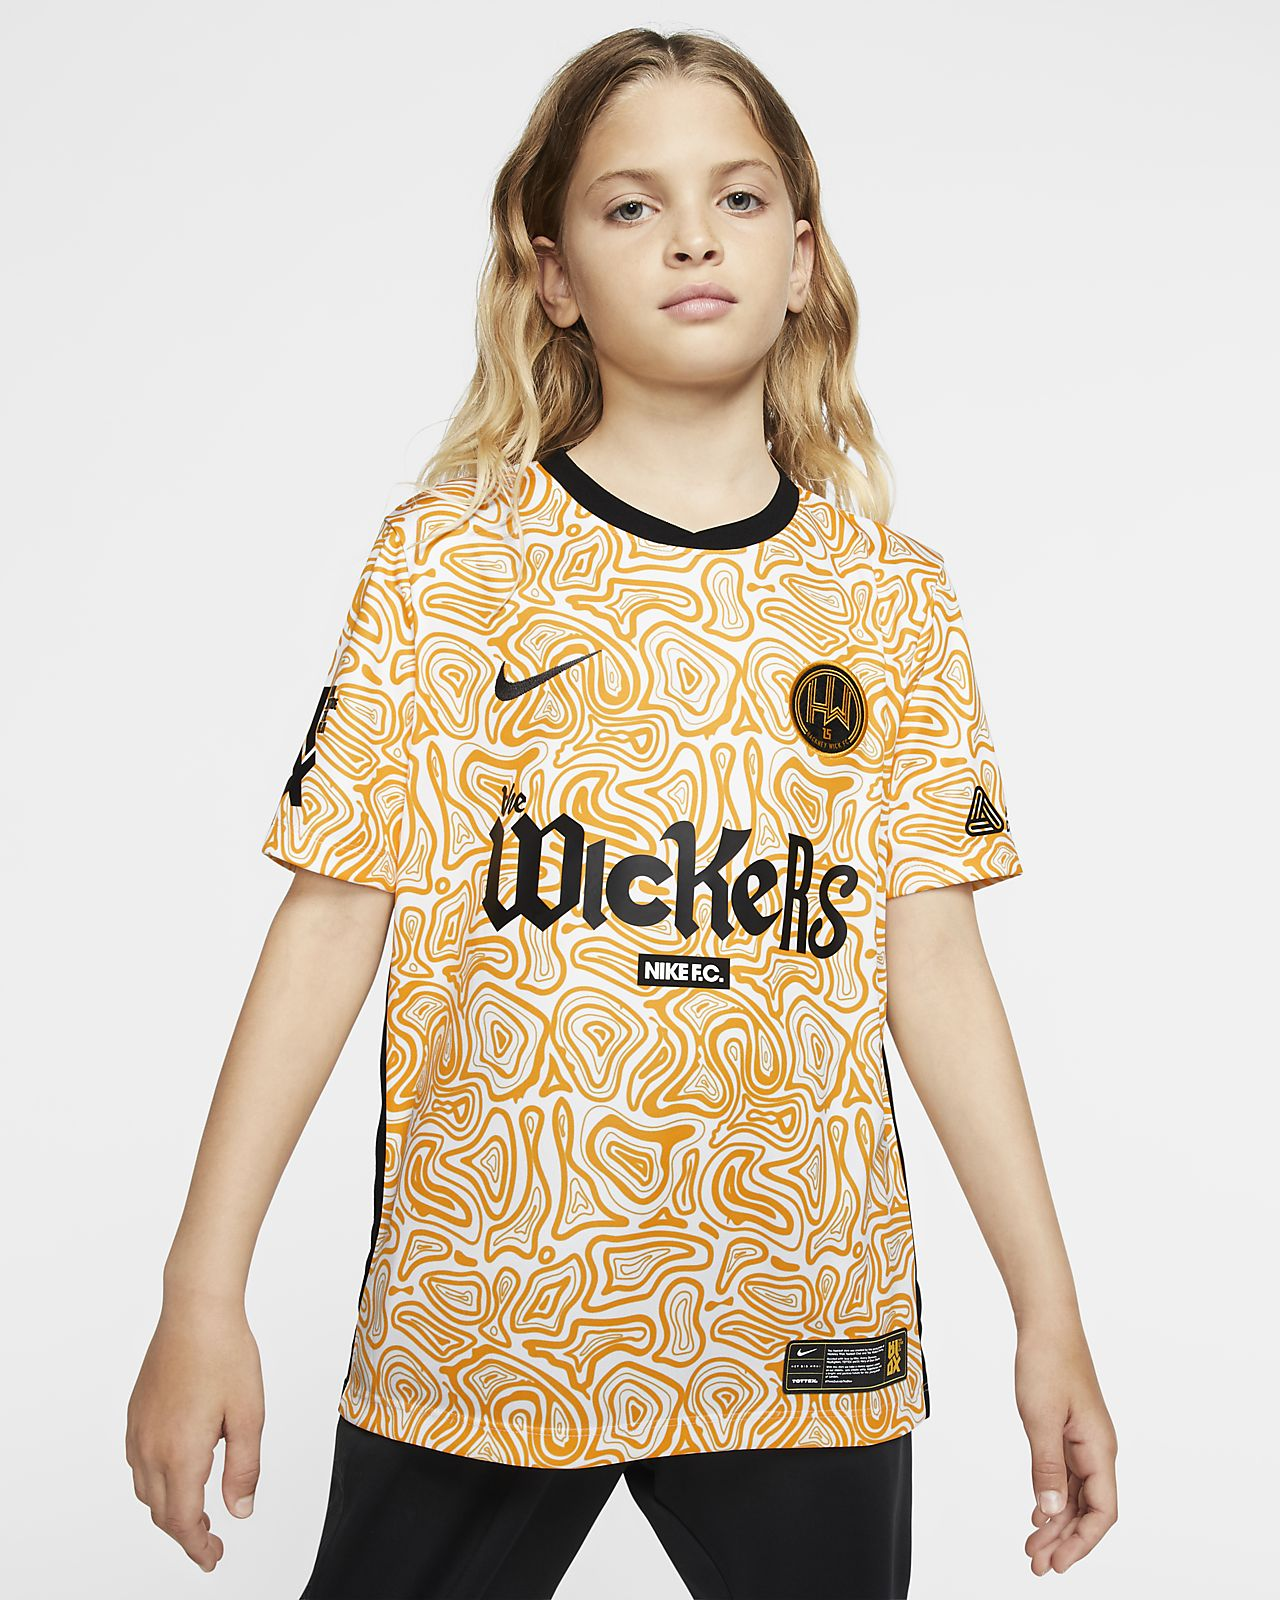 Hackney Wick FC Away Older Kids' Football Shirt